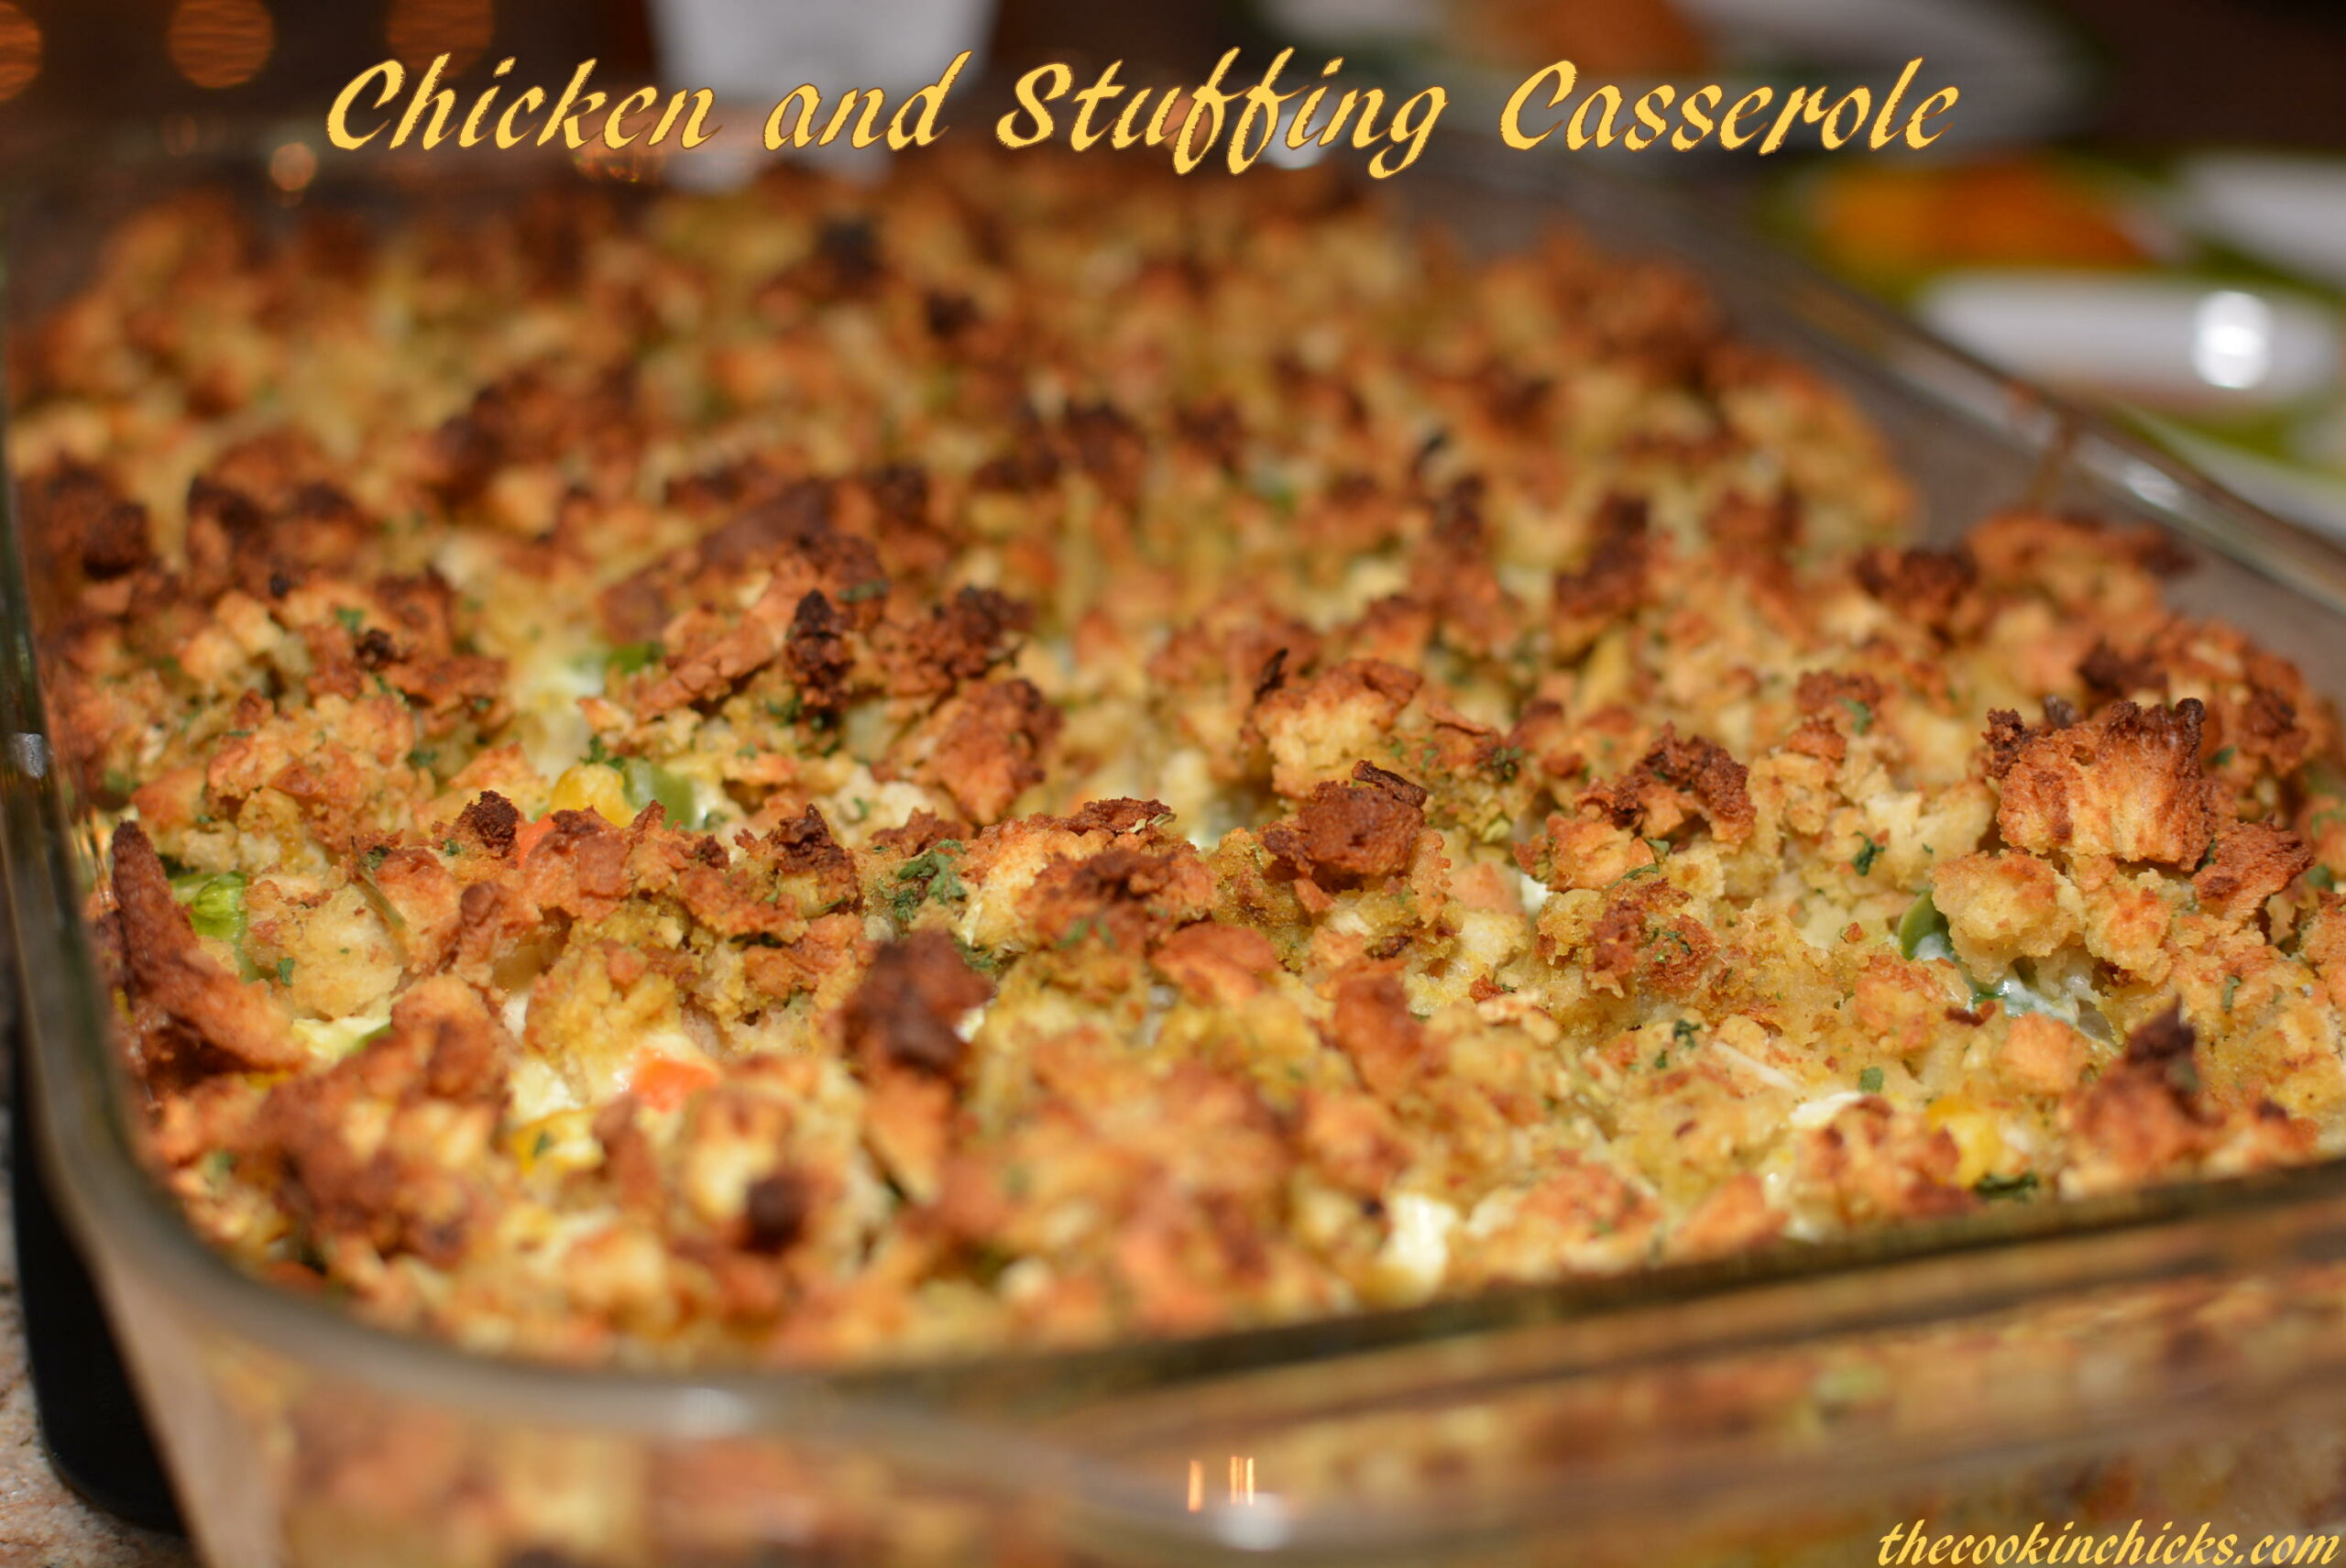 Chicken and Stuffing Casserole | The Cookin Chicks